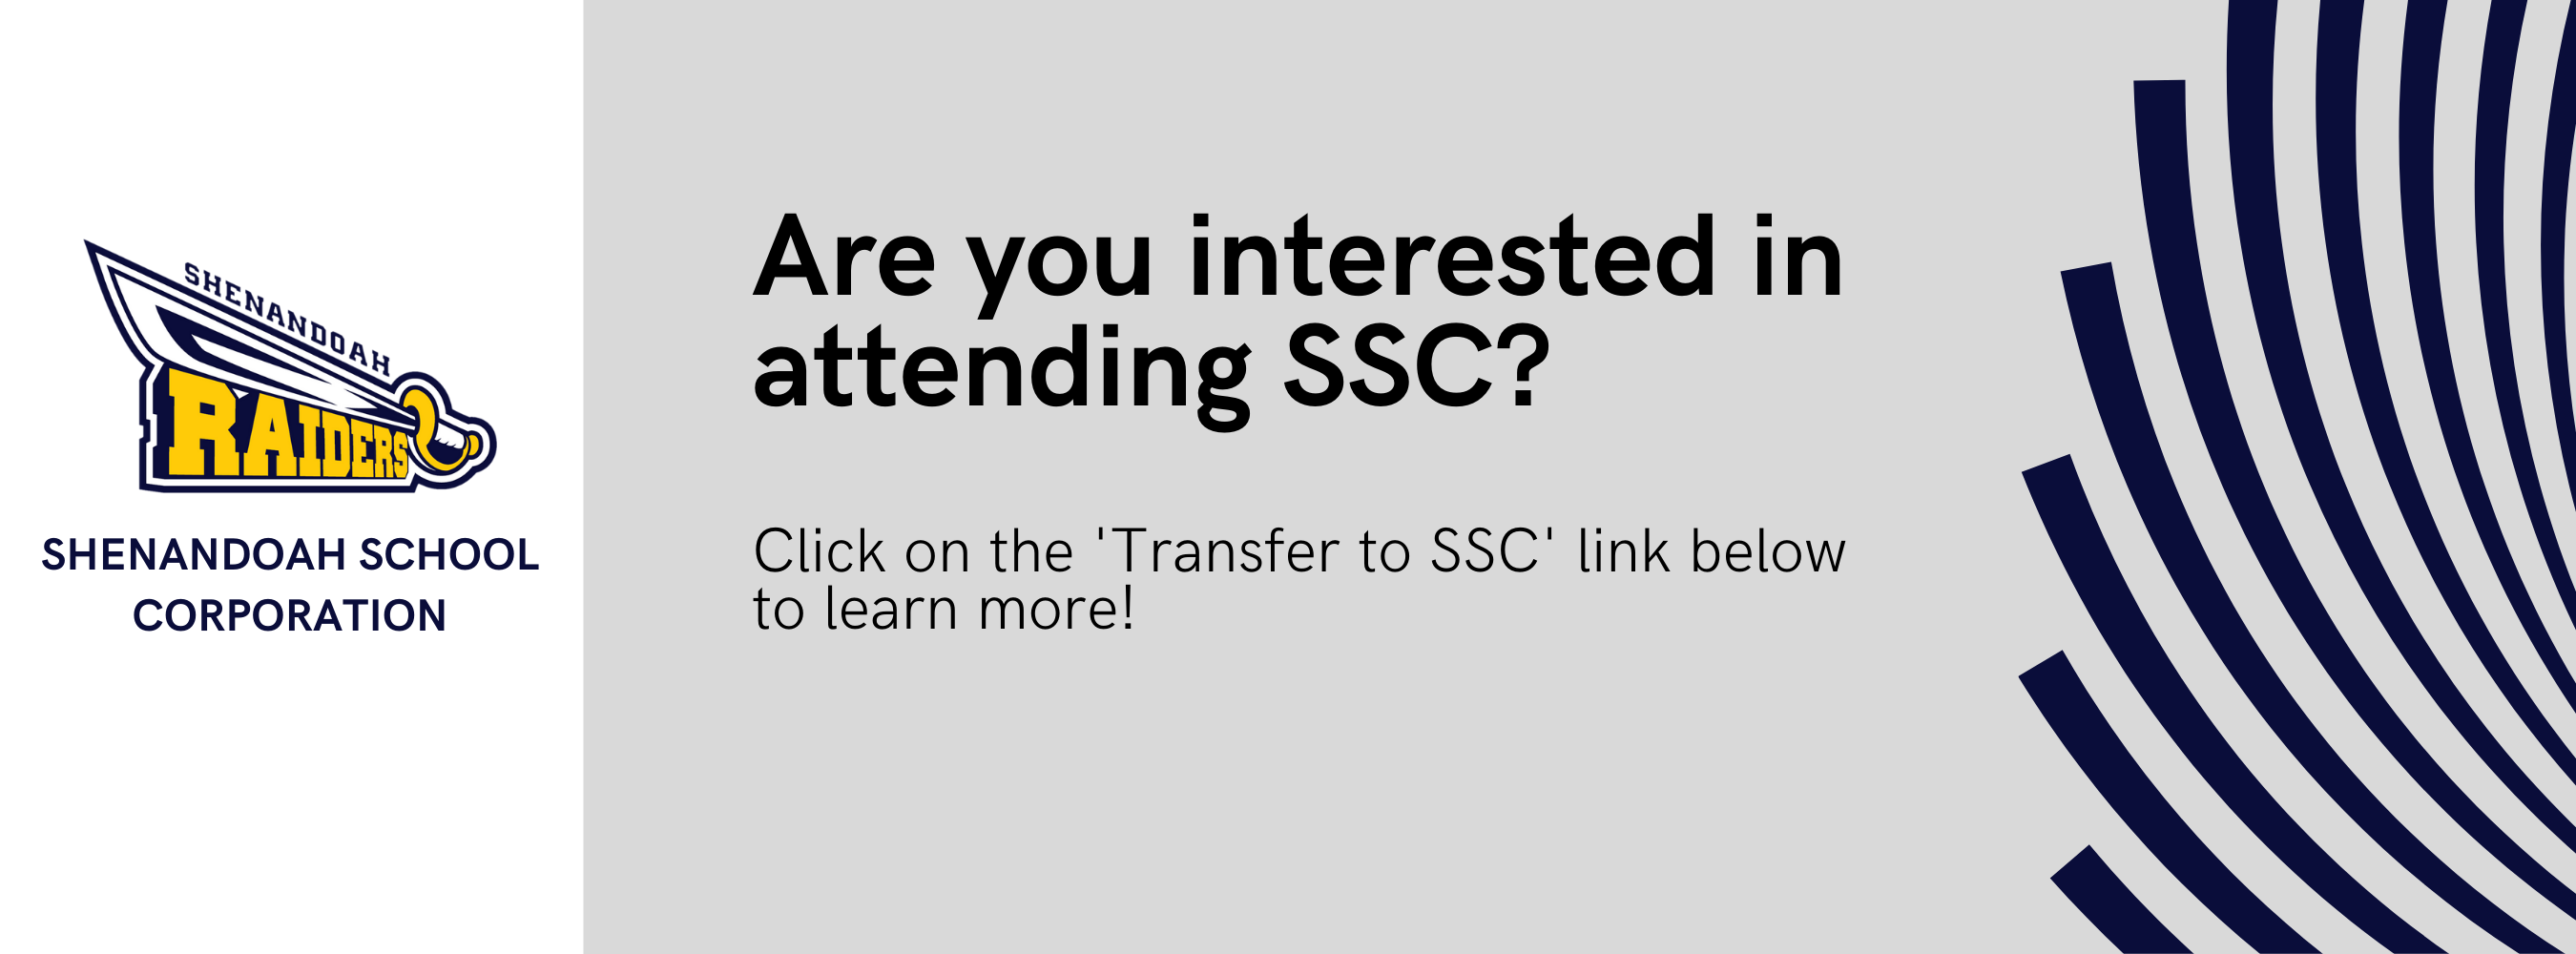 Are you interested in attending SSC? Click on the 'transfer to ssc' link below to learn more.